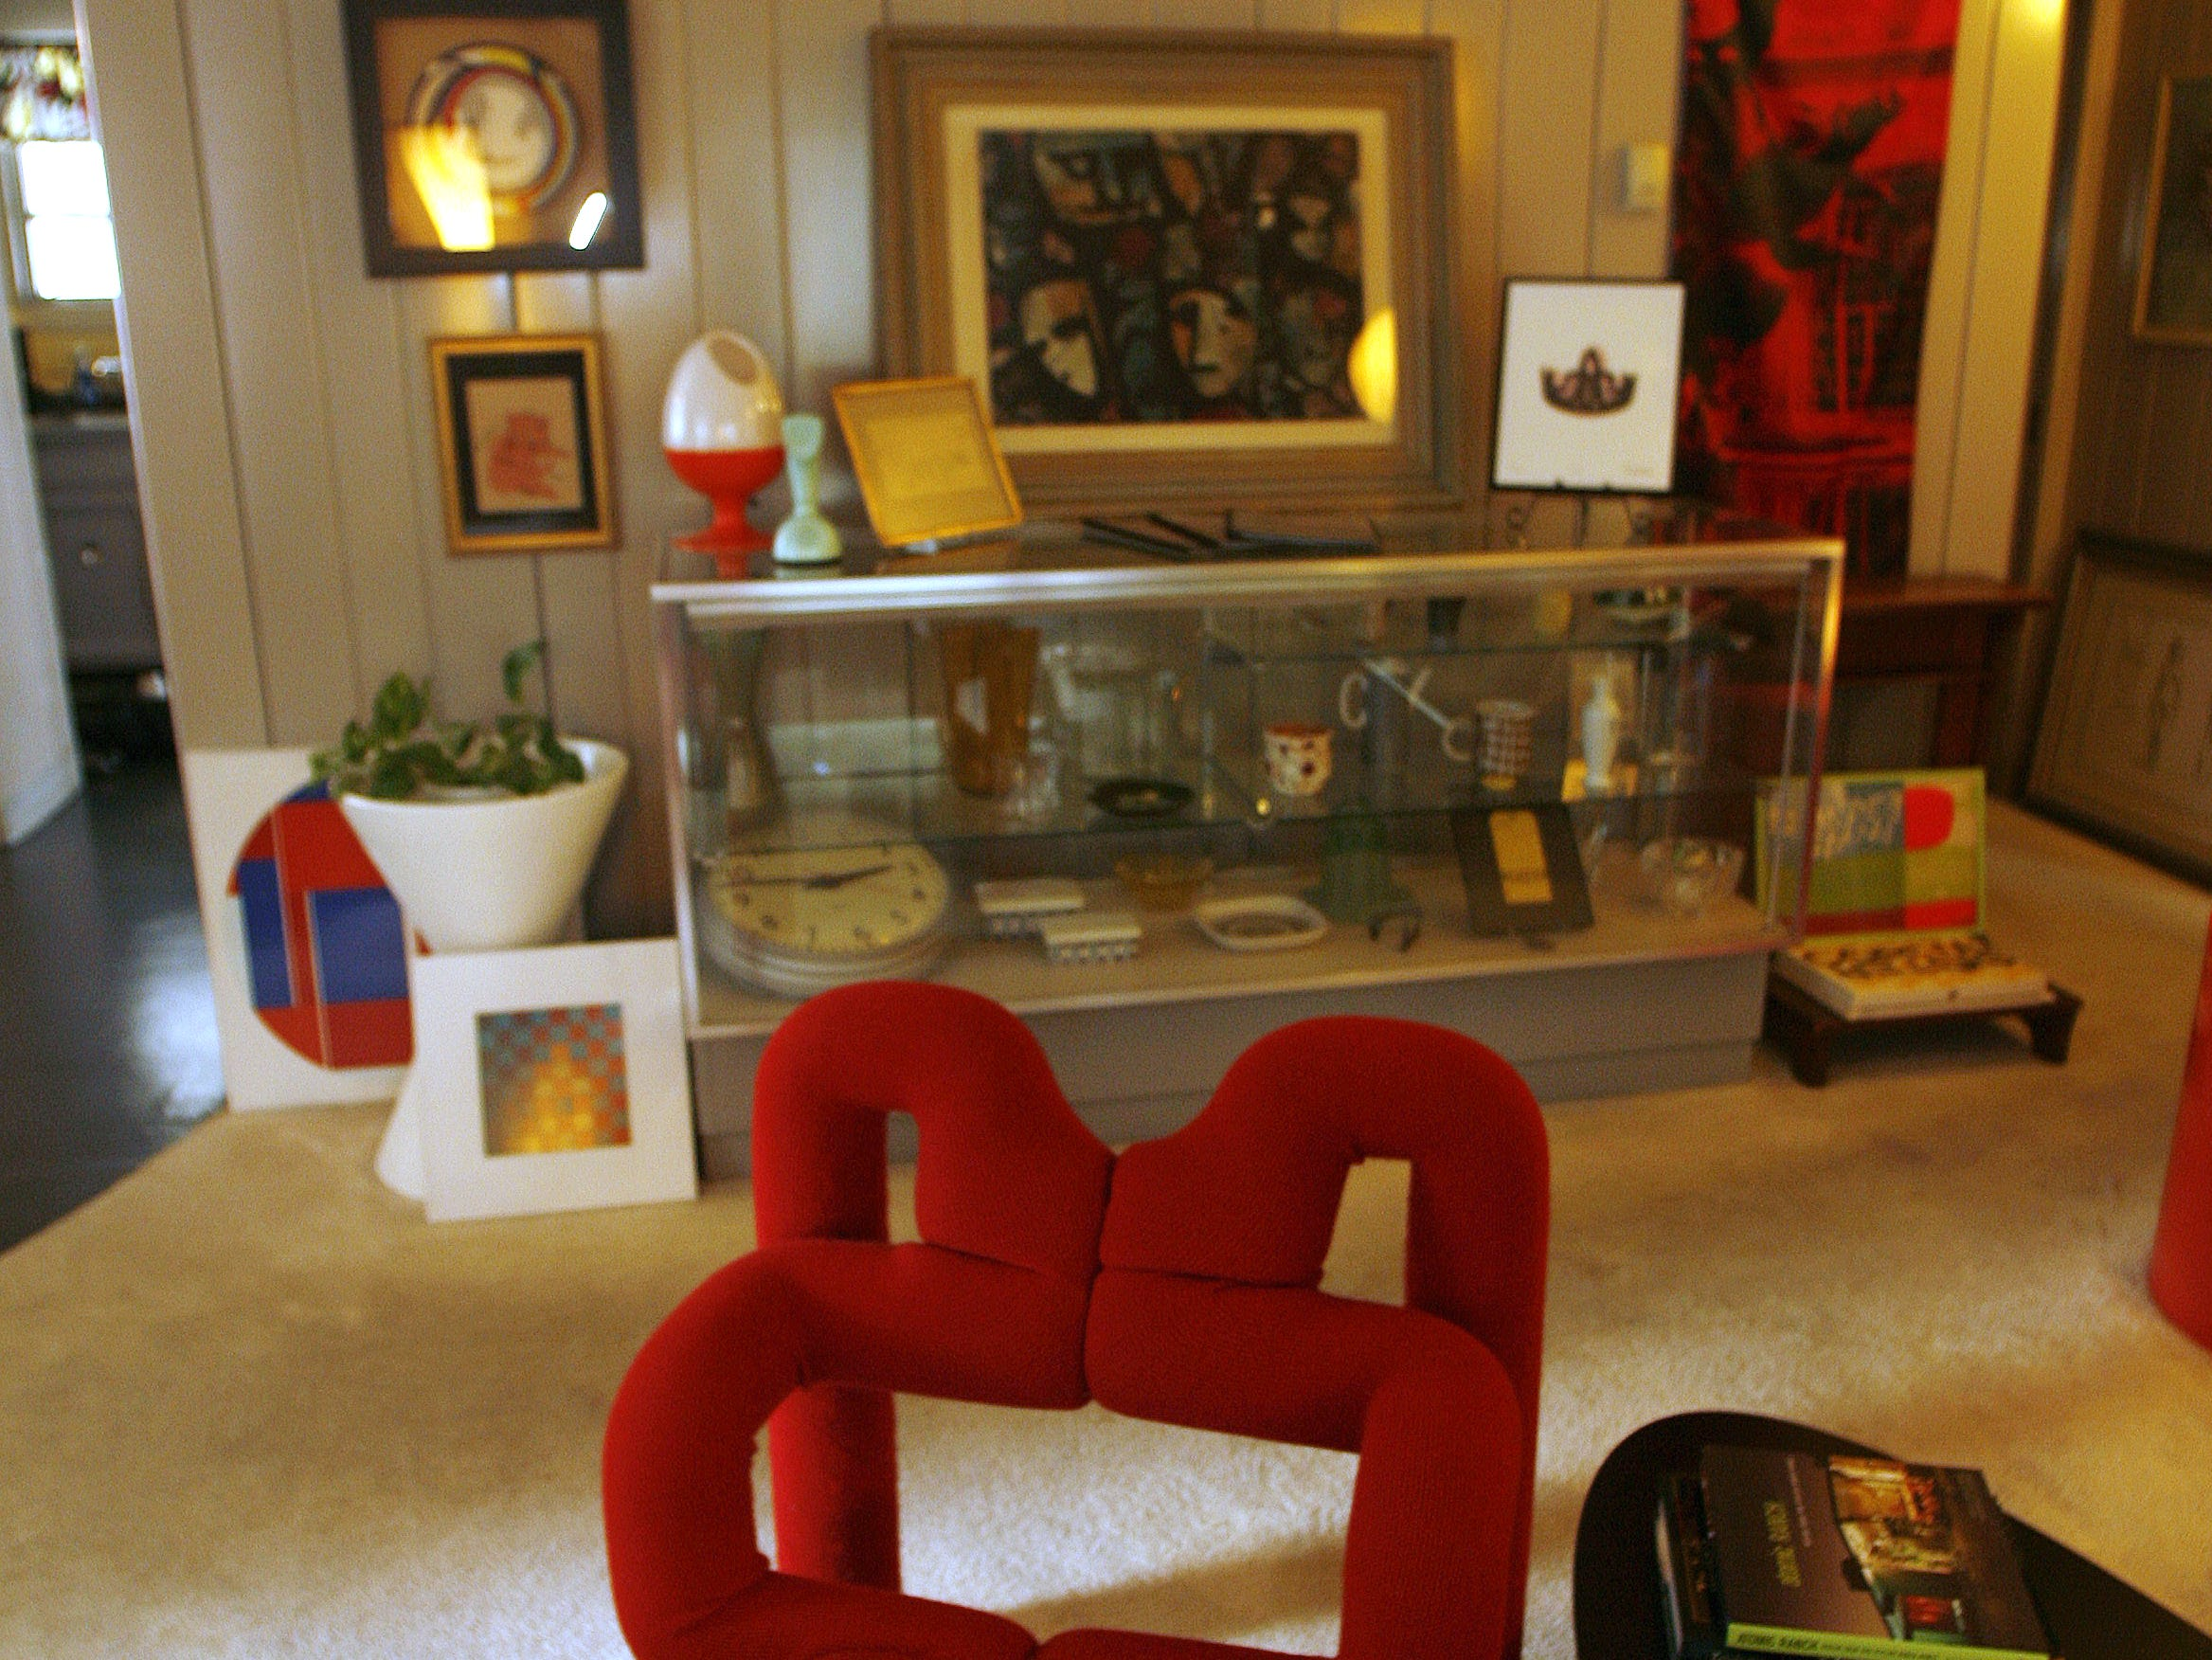 Stephanie and Michael O'Neal told the Register in 2006 that their Lustron home made a good backdrop for their art collection. This is in their living room.